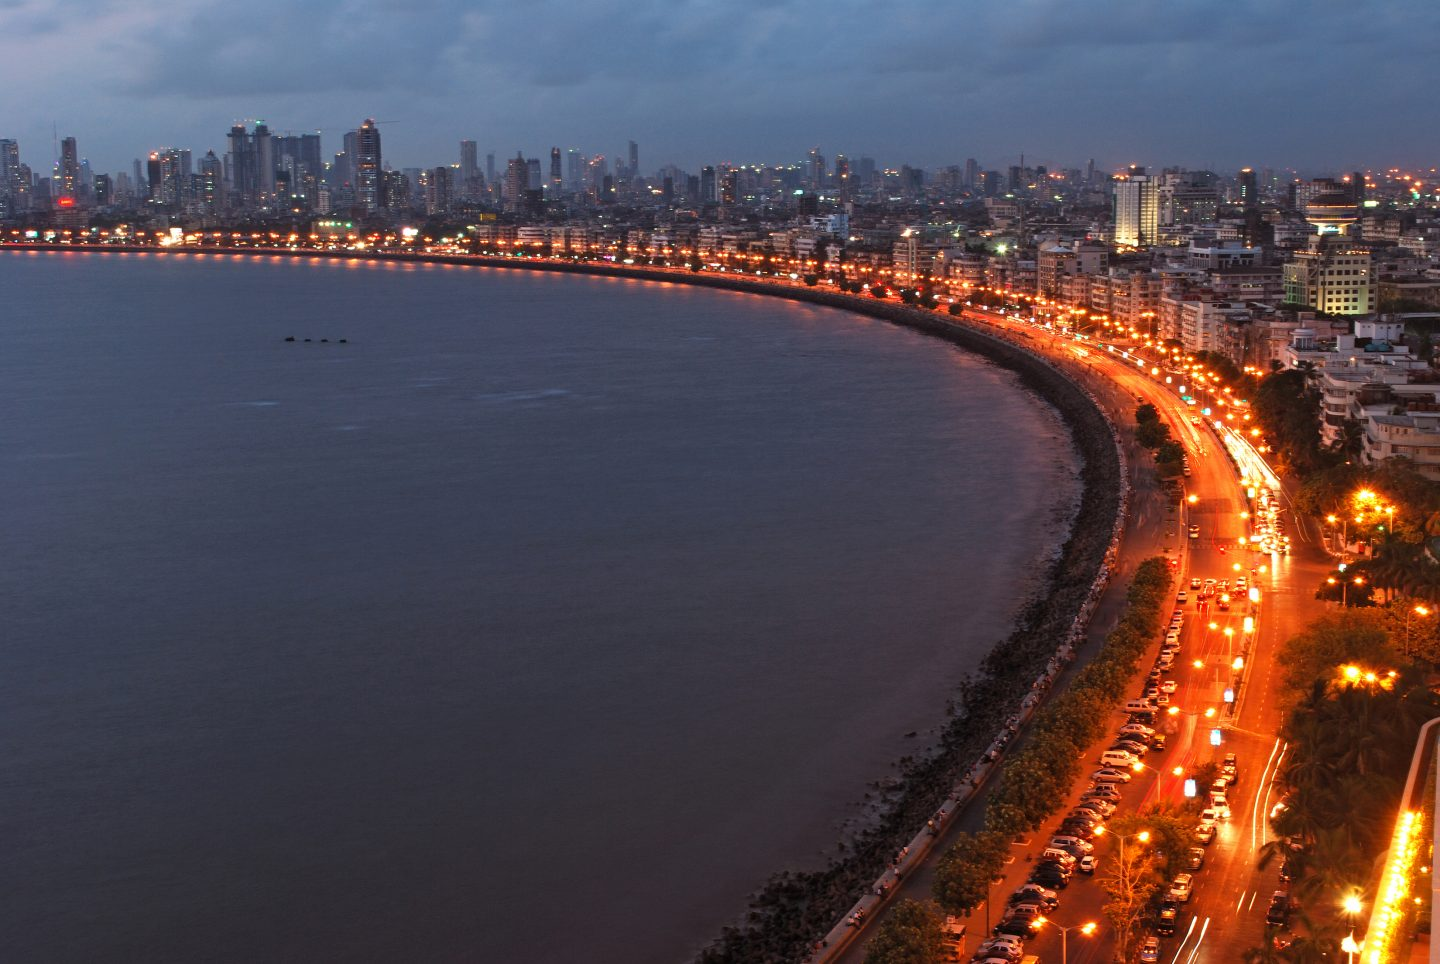 Marine Drive - one of the best things to do in Mumbai